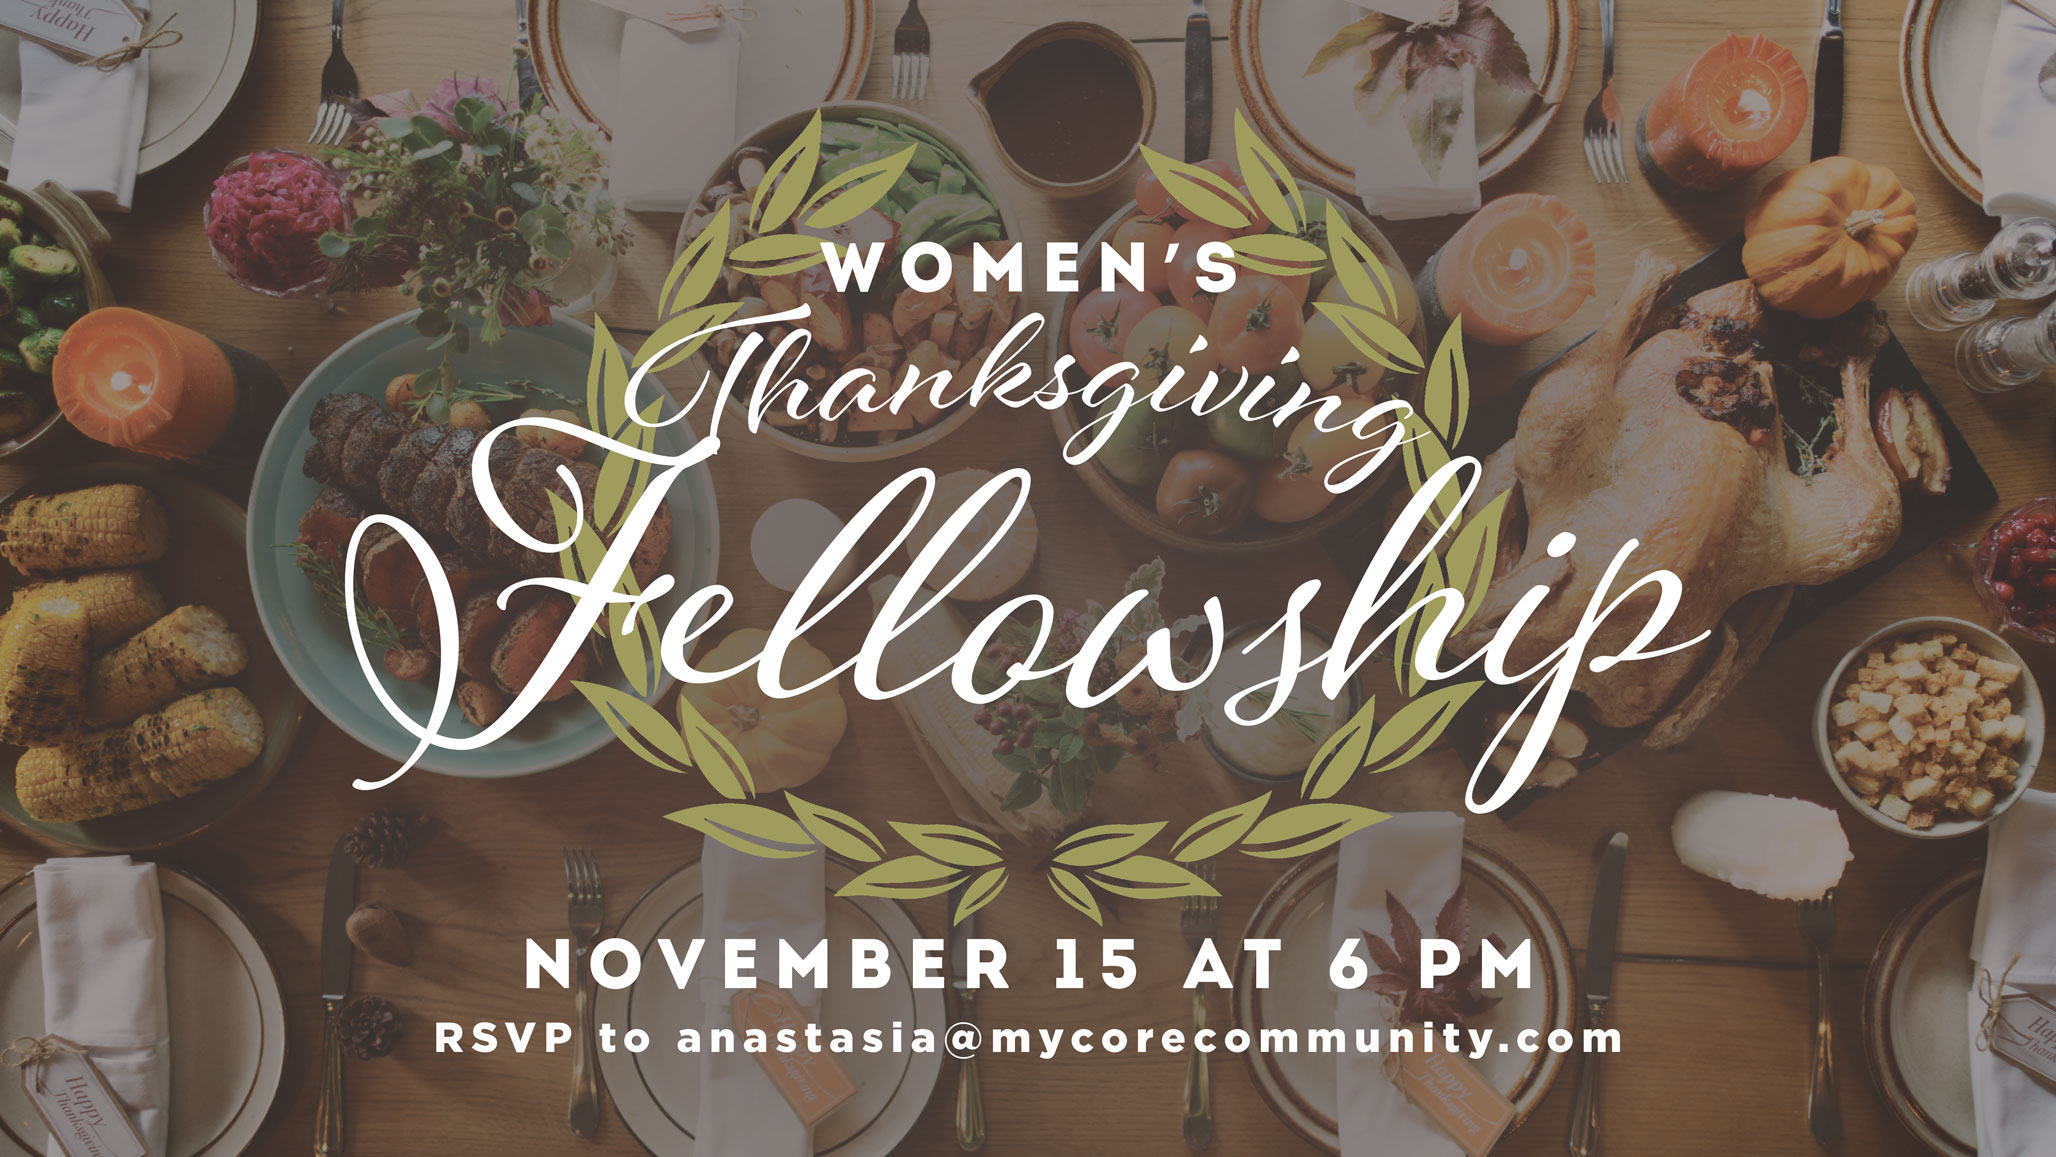 Women's Thanksgiving Fellowship | CORE Christian Community